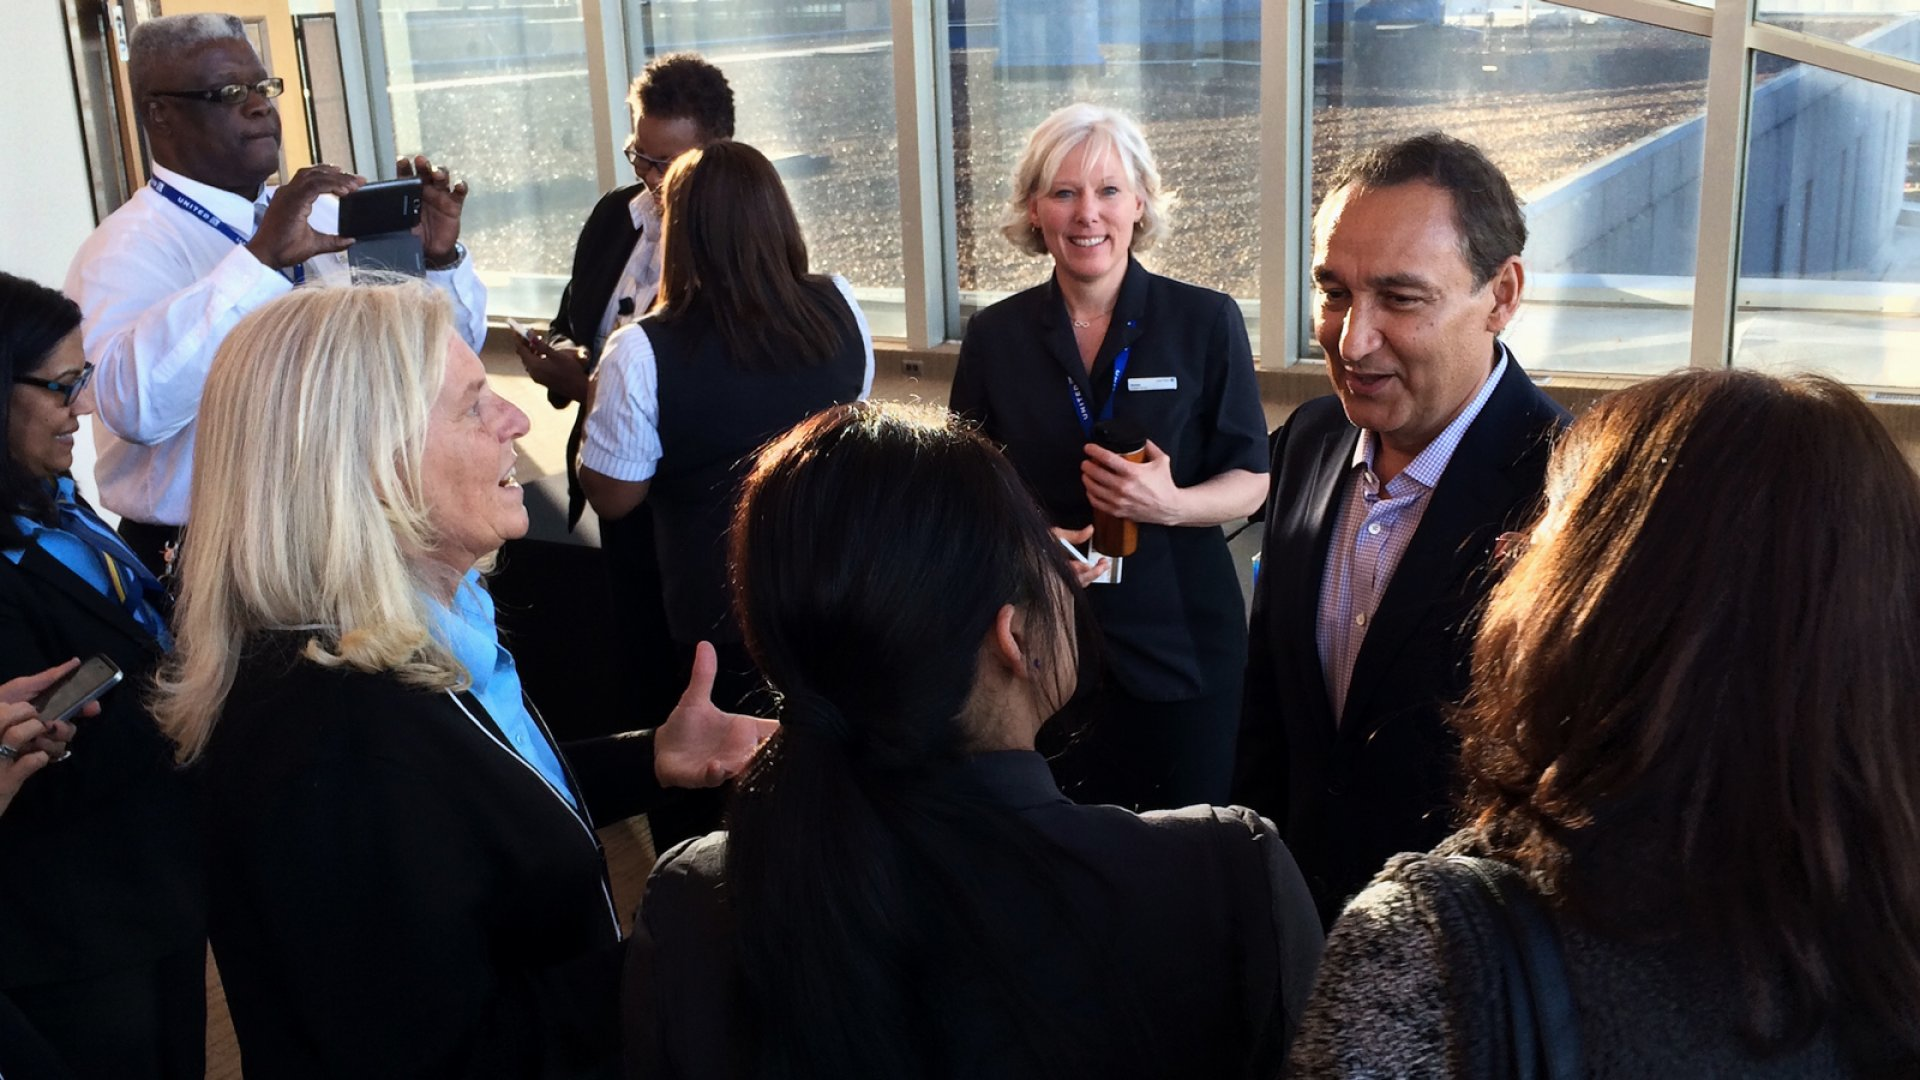 United CEO Oscar Munoz to Return from Medical Leave This Month